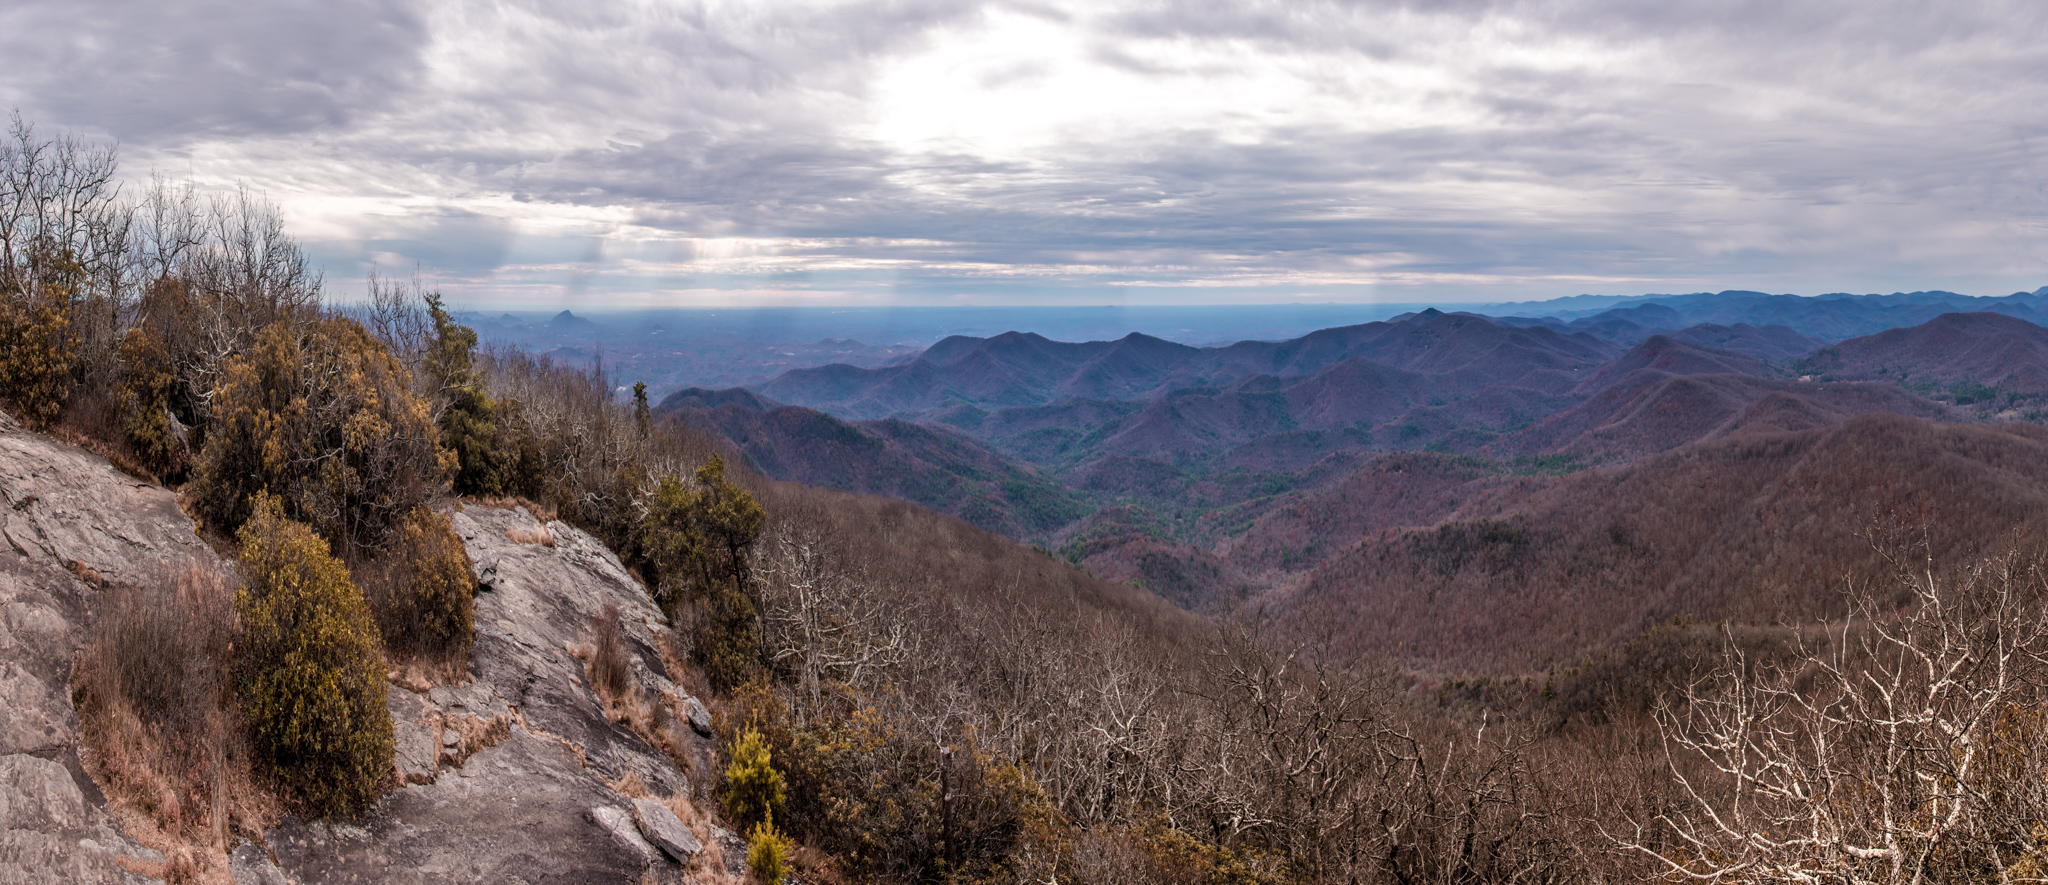 2016-12-03 - 2016-12-03 - Blood Mountain Hike - 042